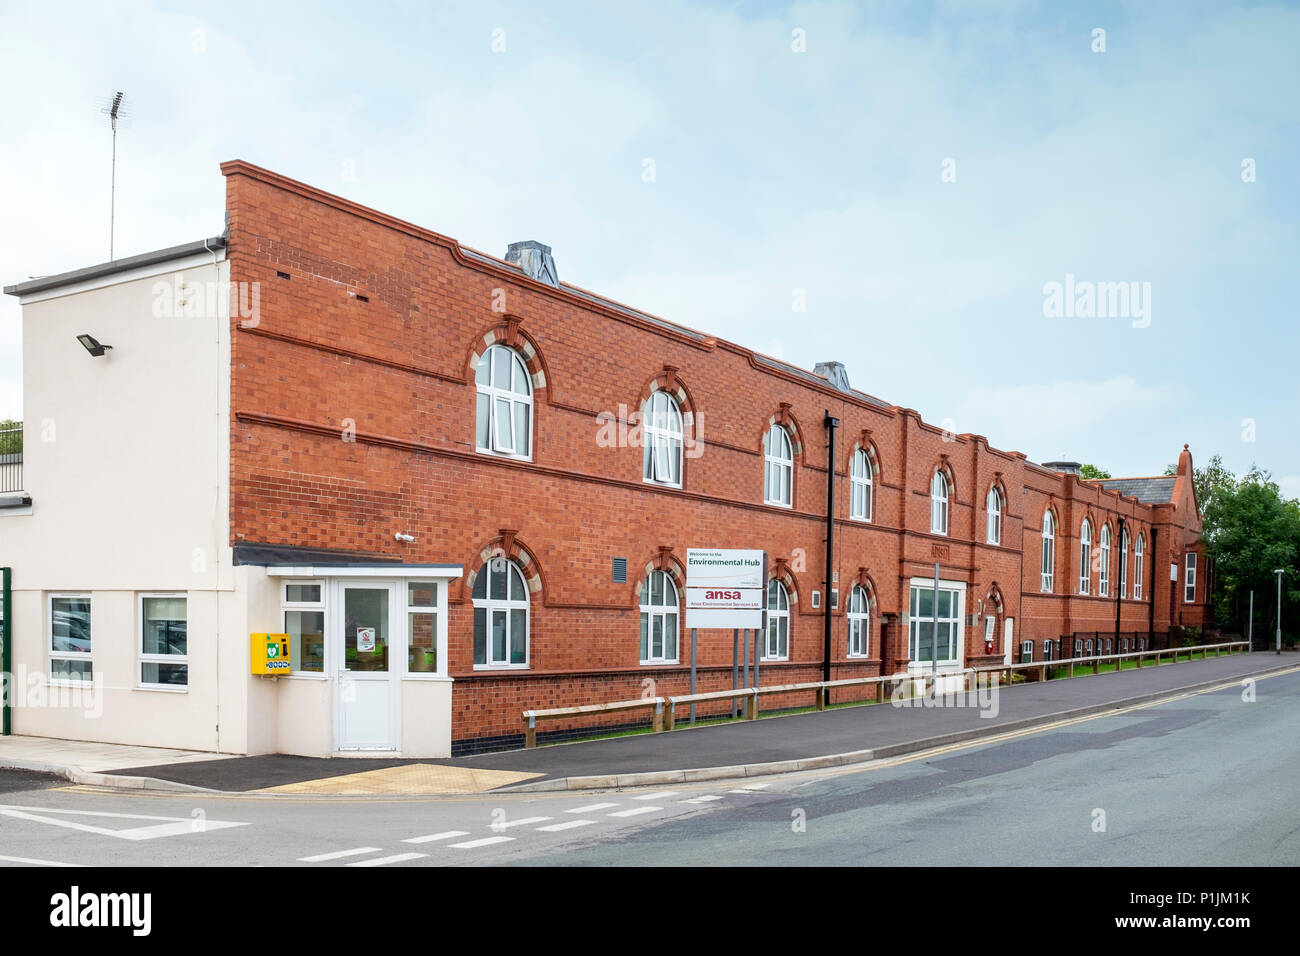 Ansa environmental service Ltd in Middlewich Cheshire England UK Stock Photo